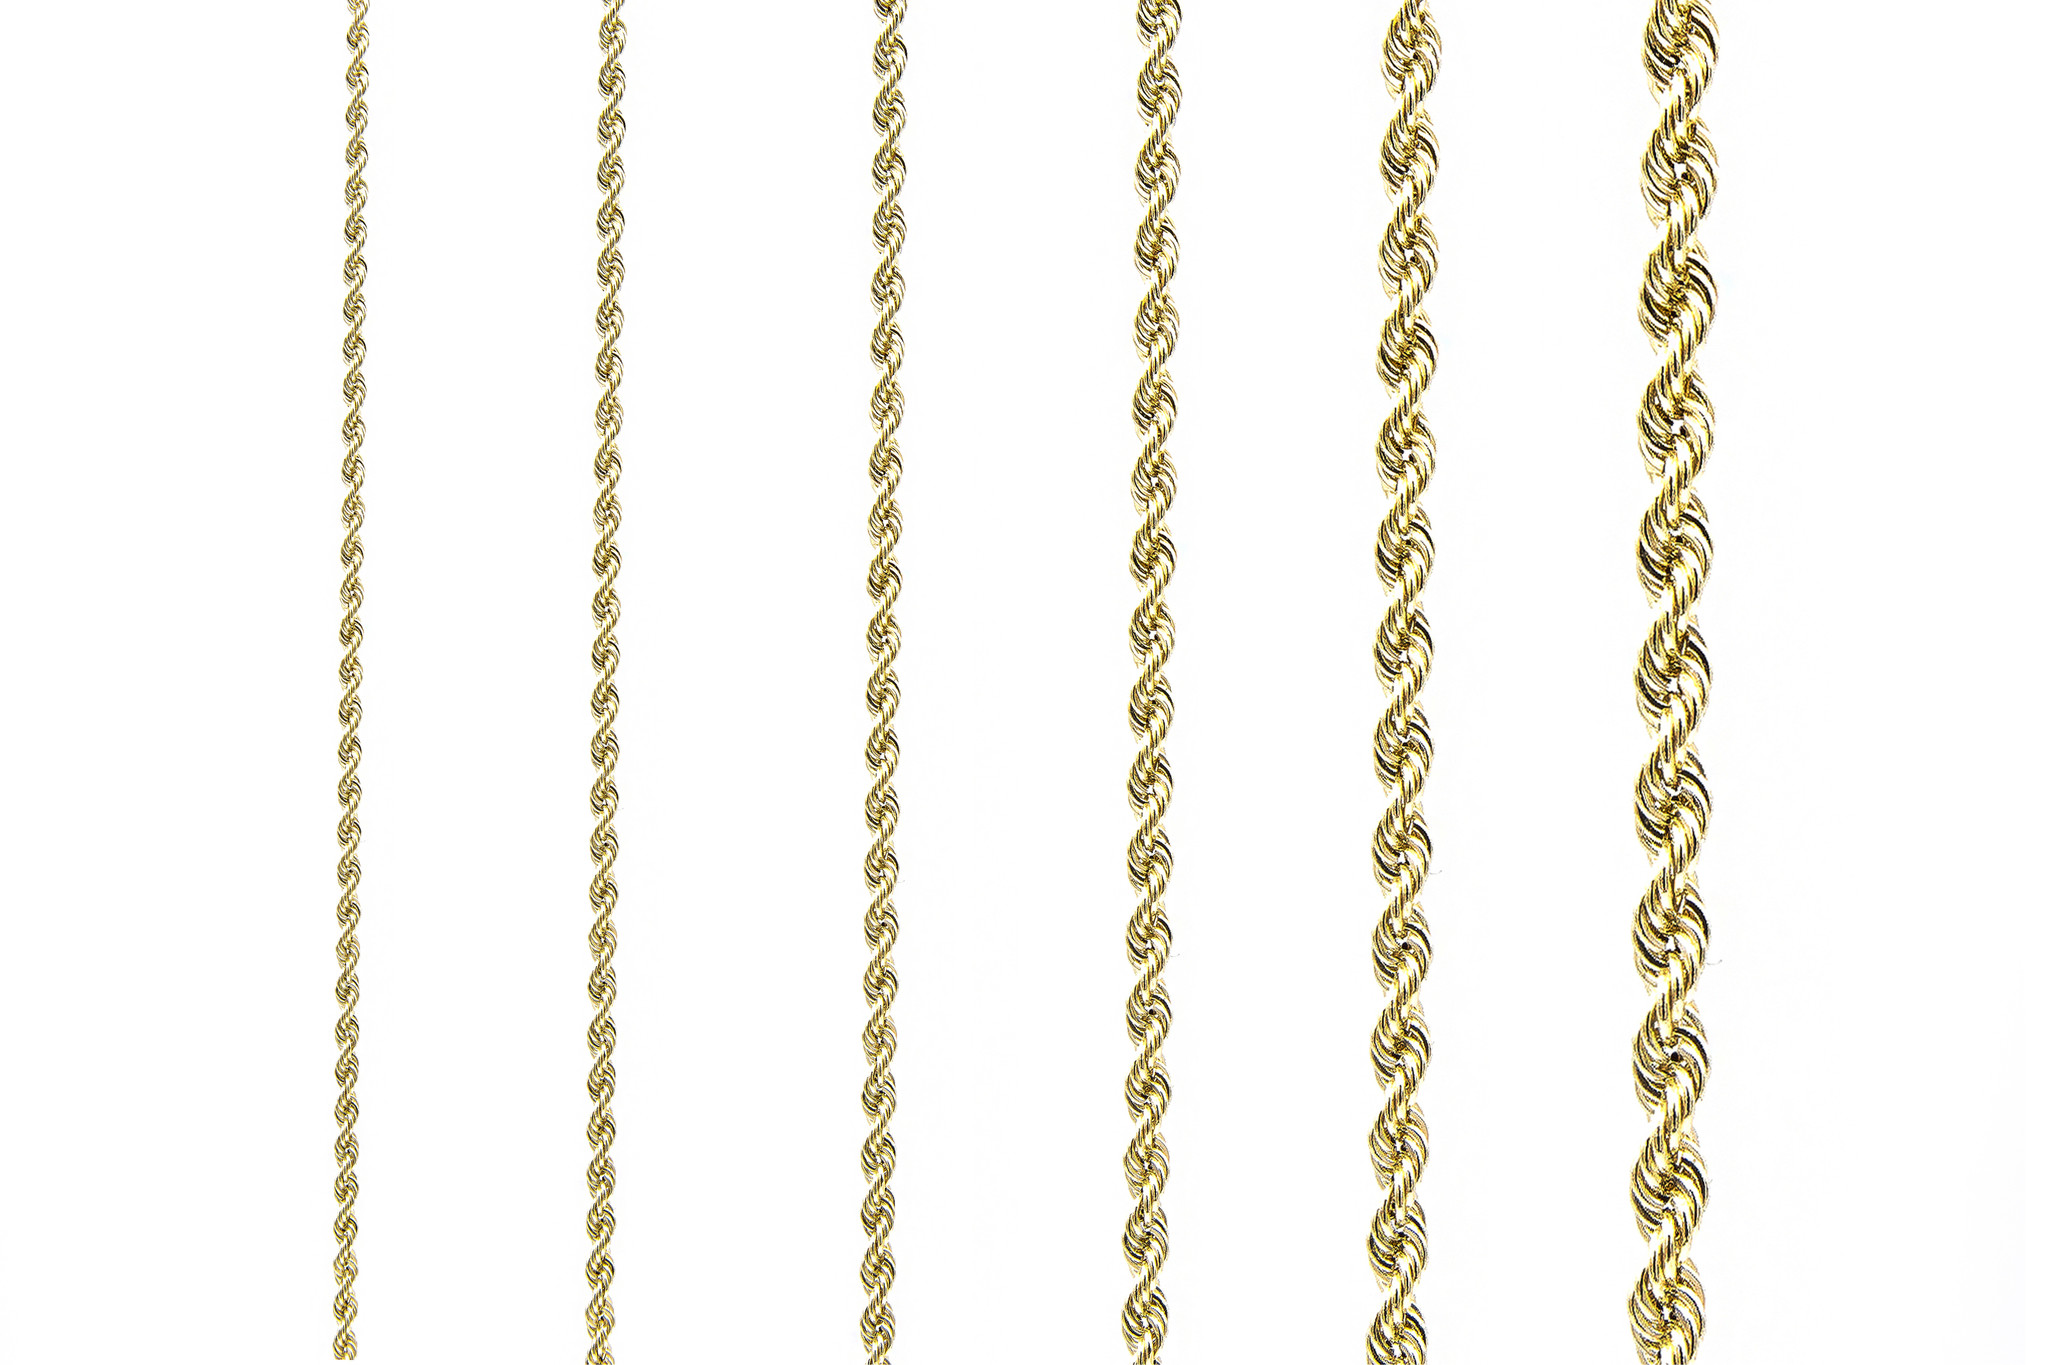 Rope Chain 14k-6 mm-6